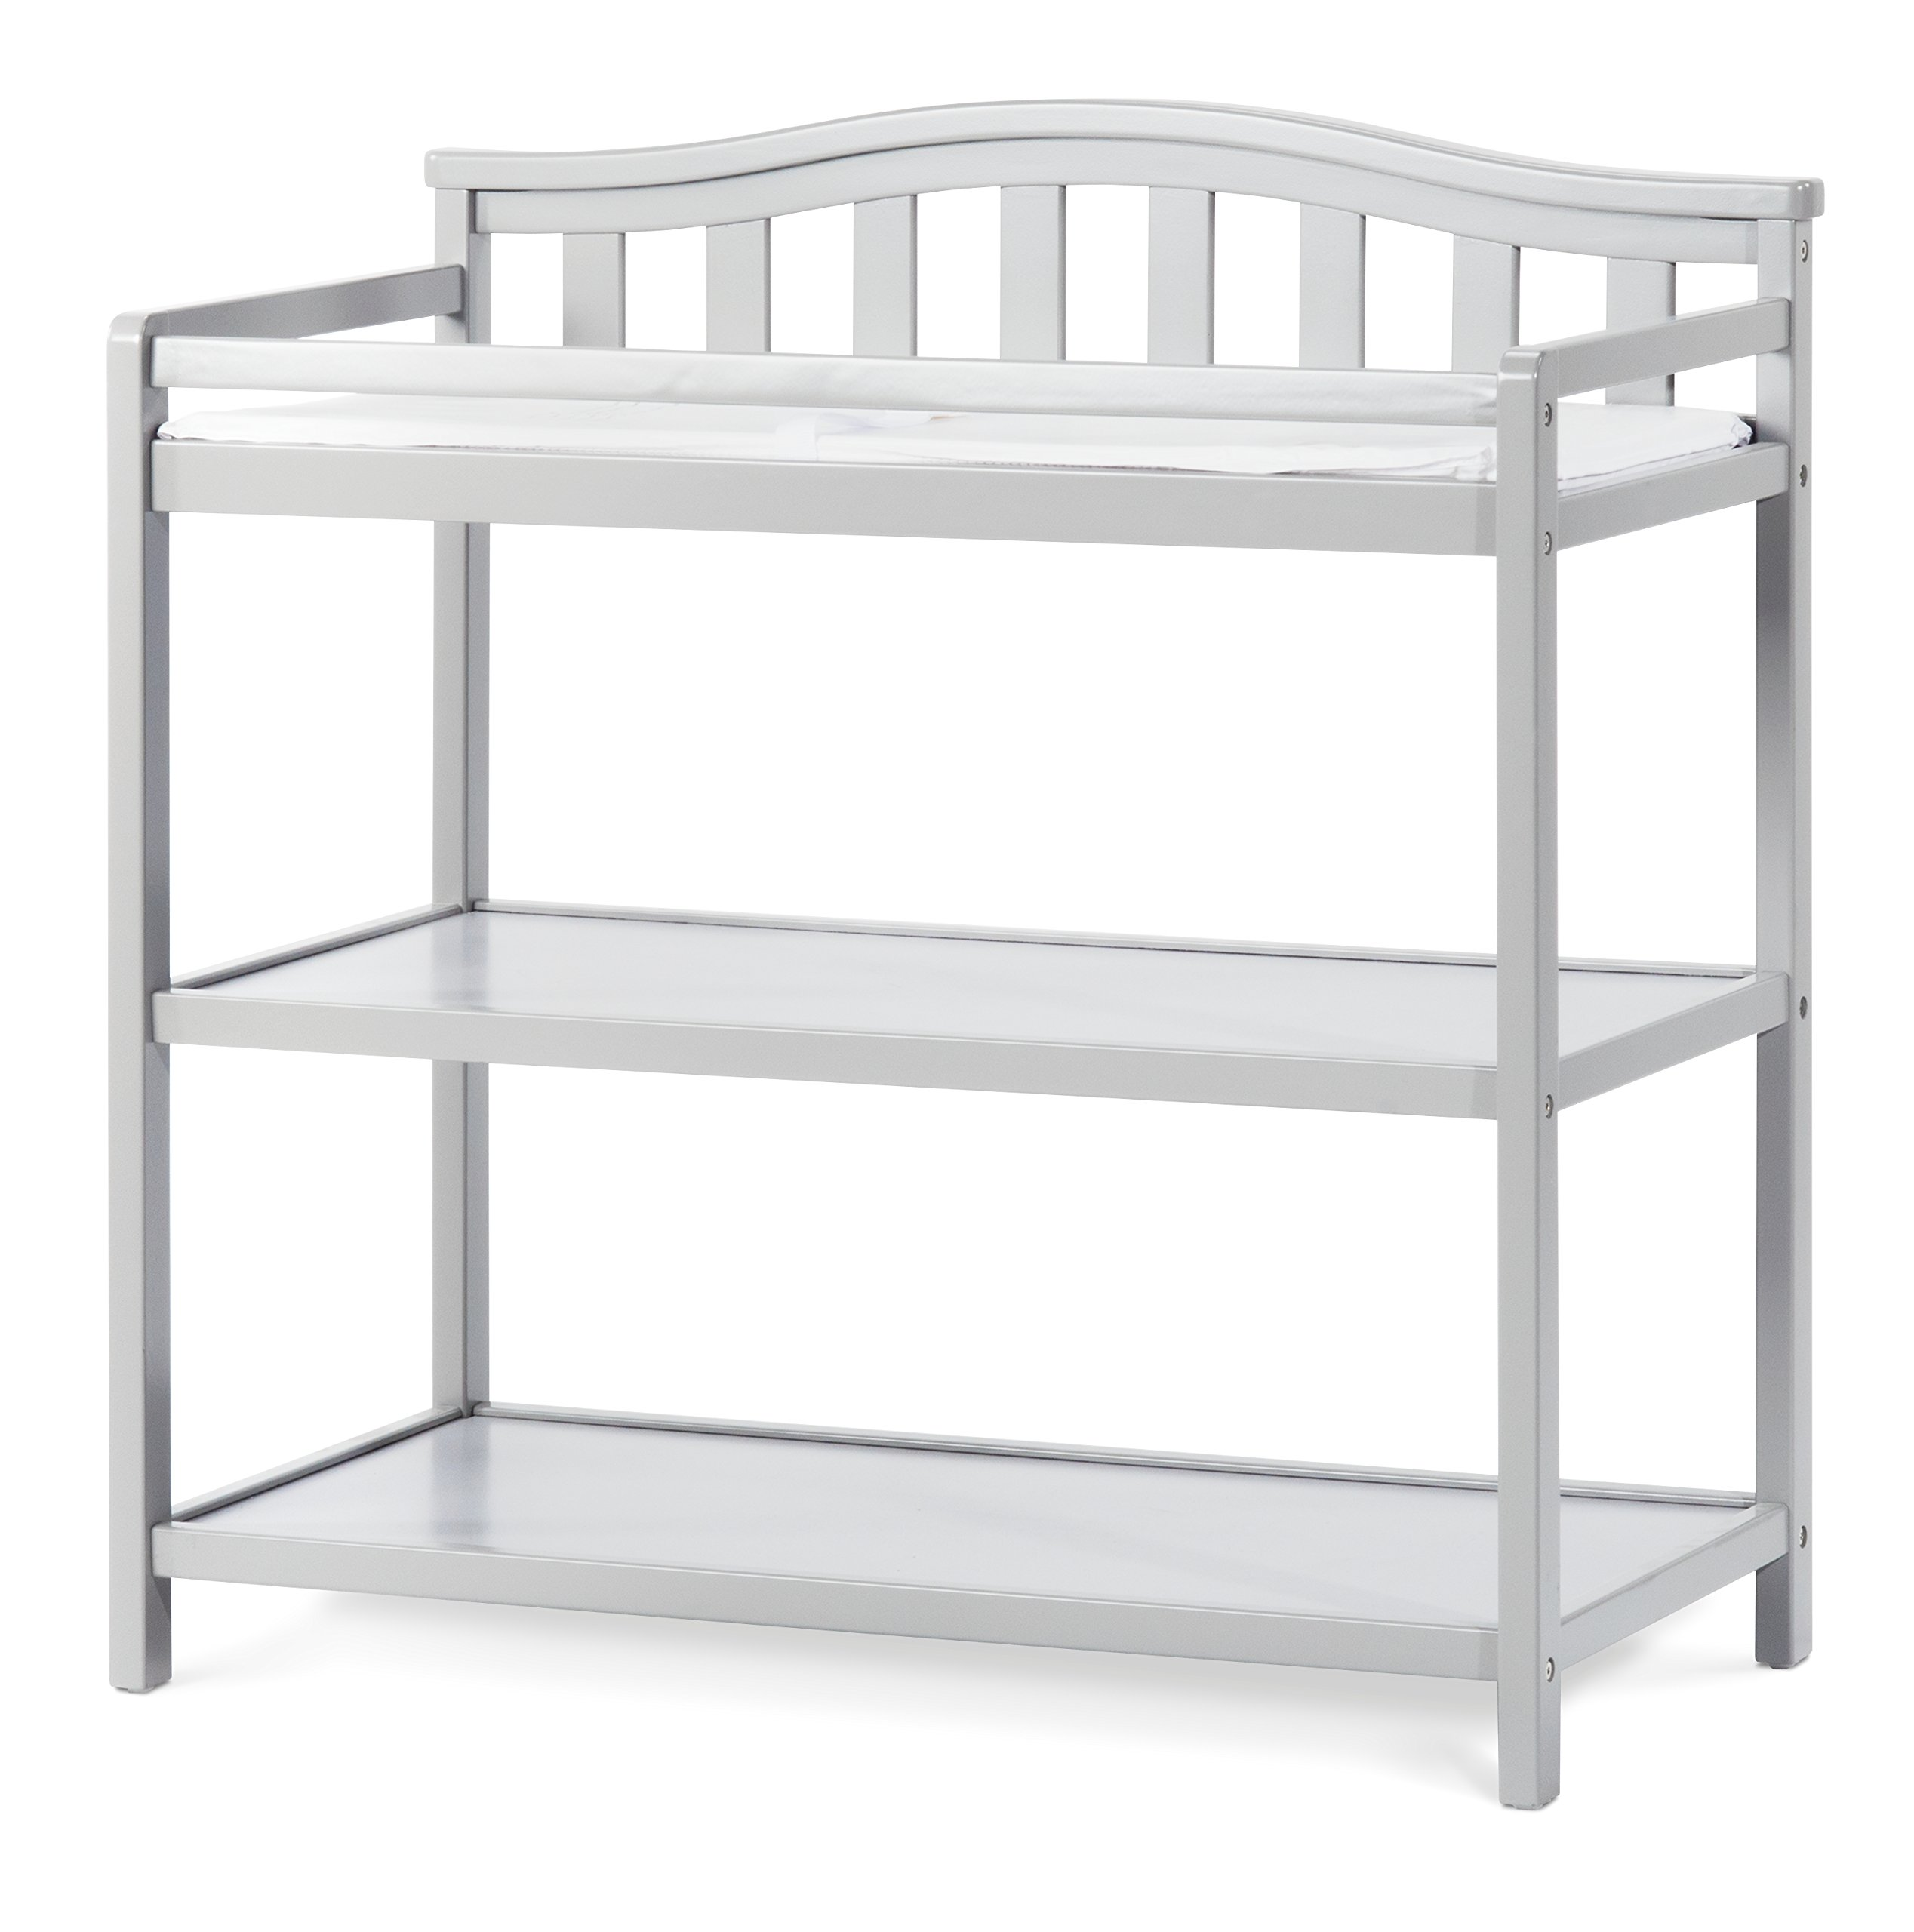 Child Craft Arched Top Changing Table with Pad, Cool Gray by Child Craft (Image #1)